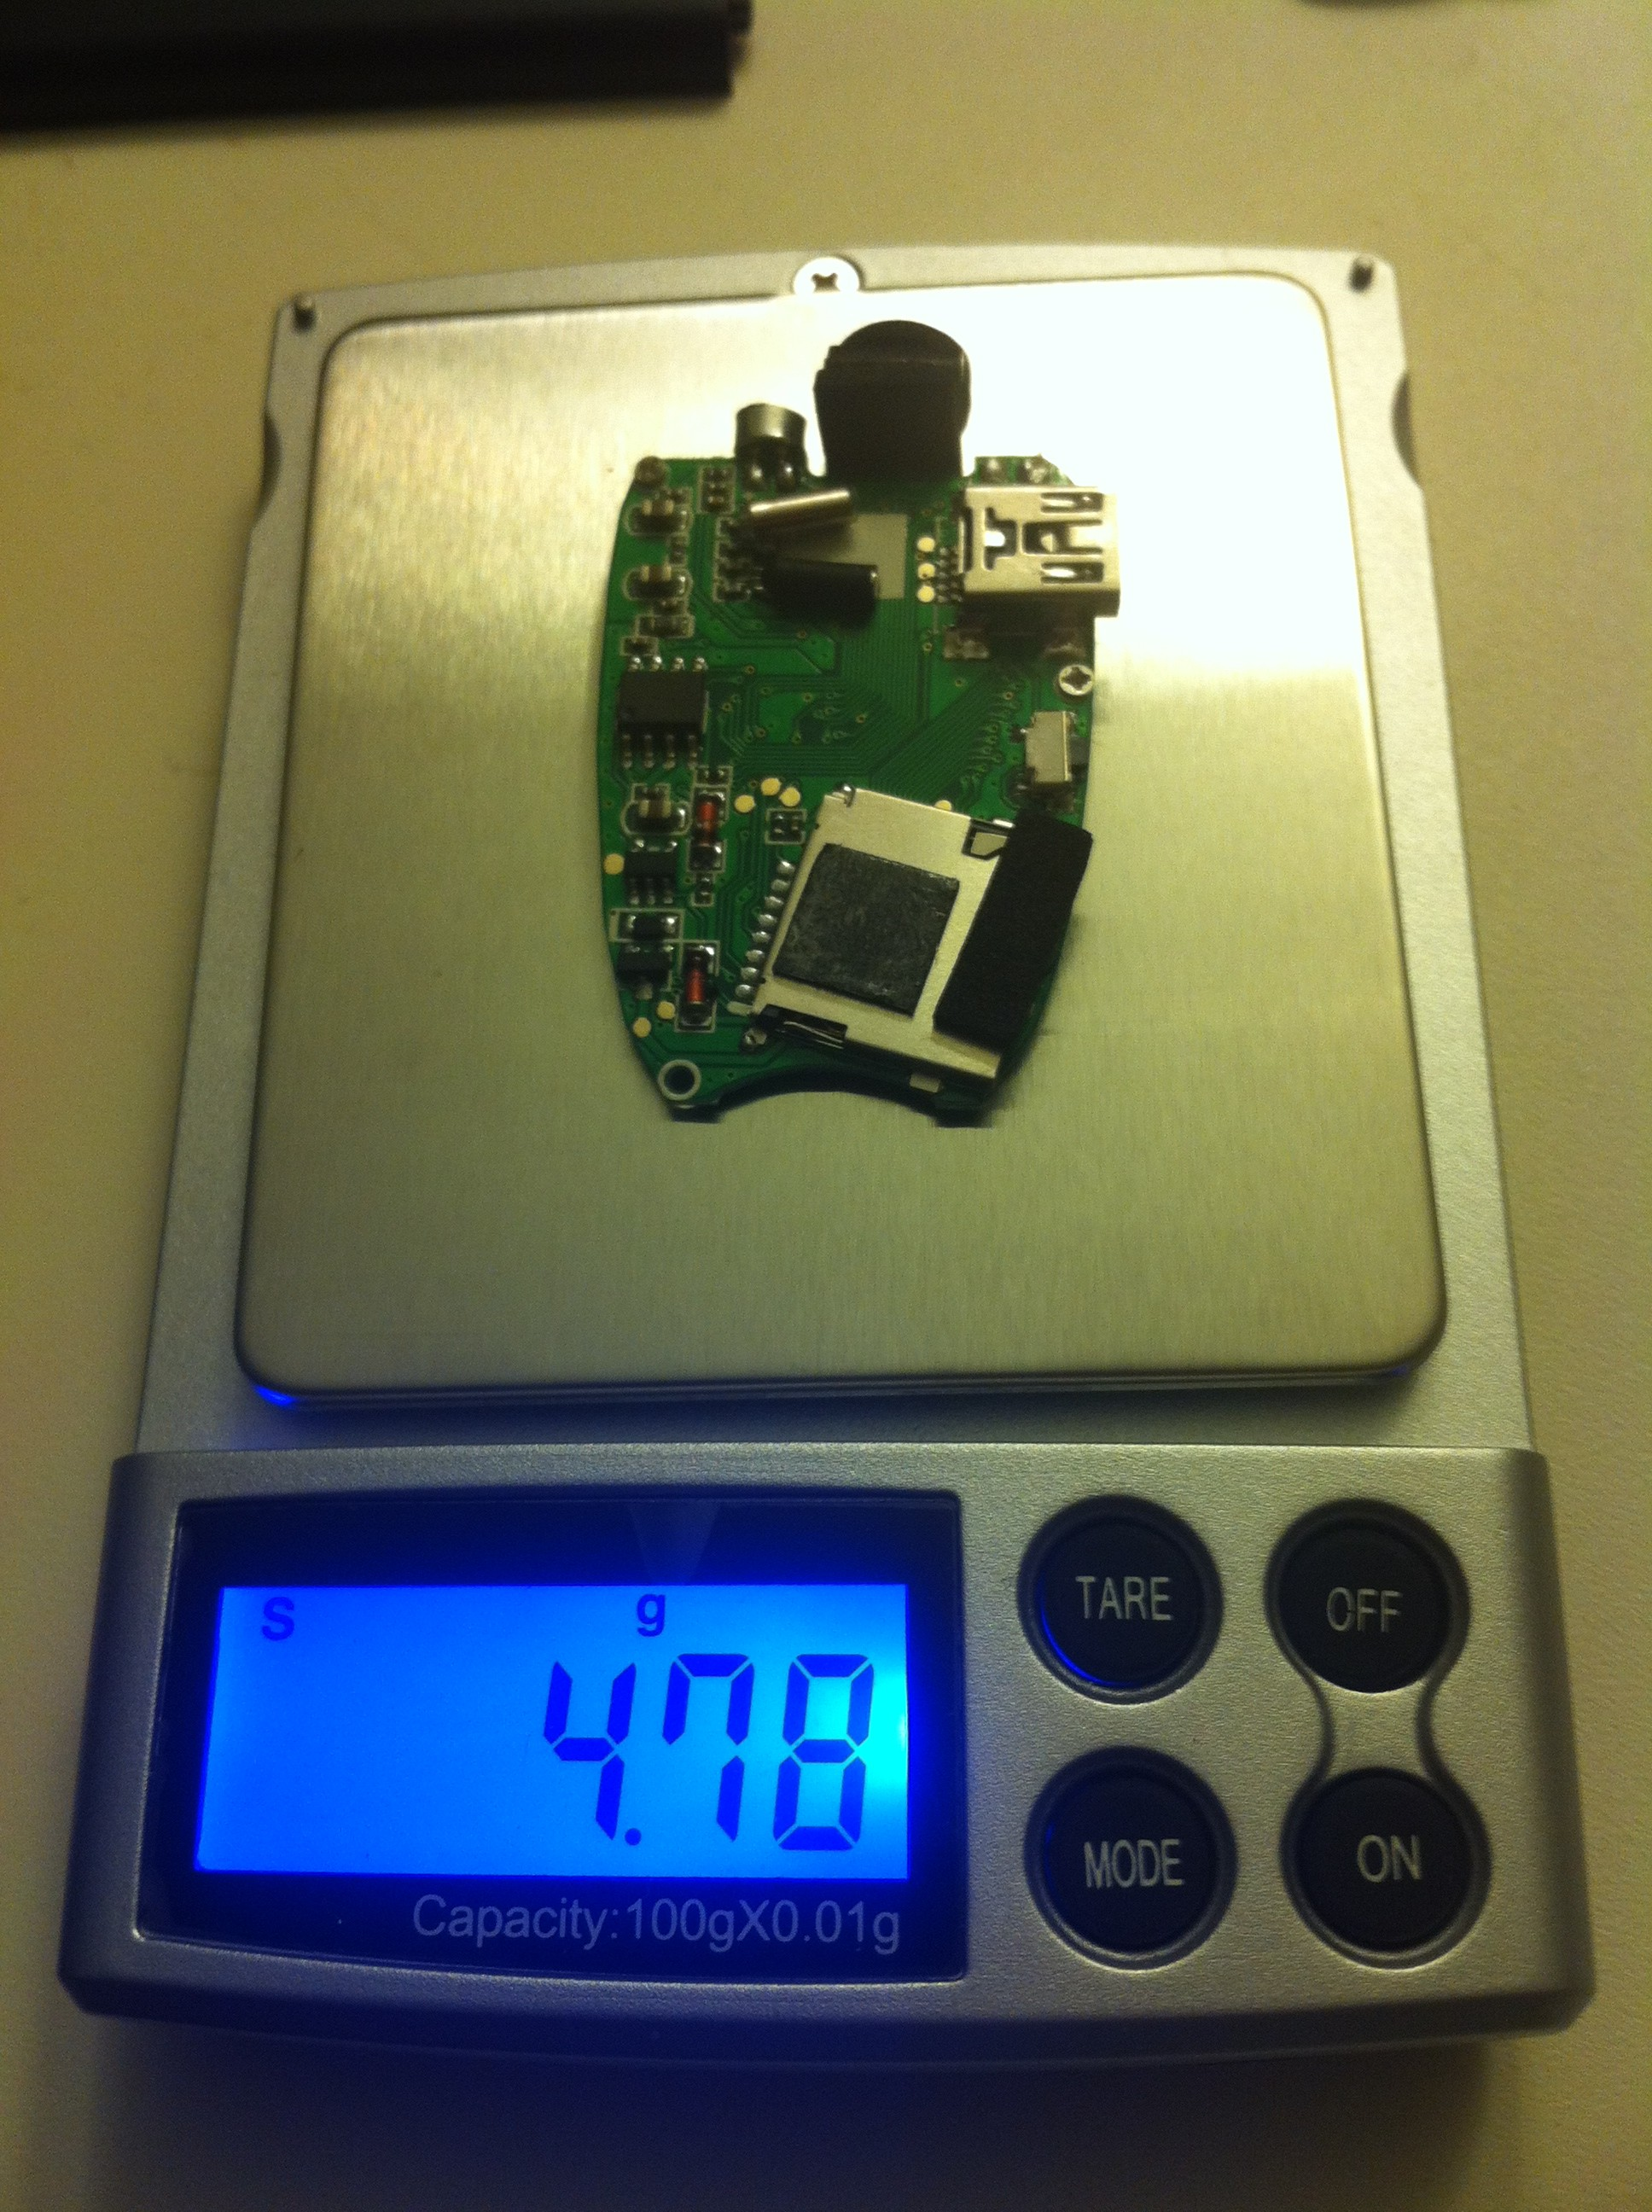 keychain camera weight